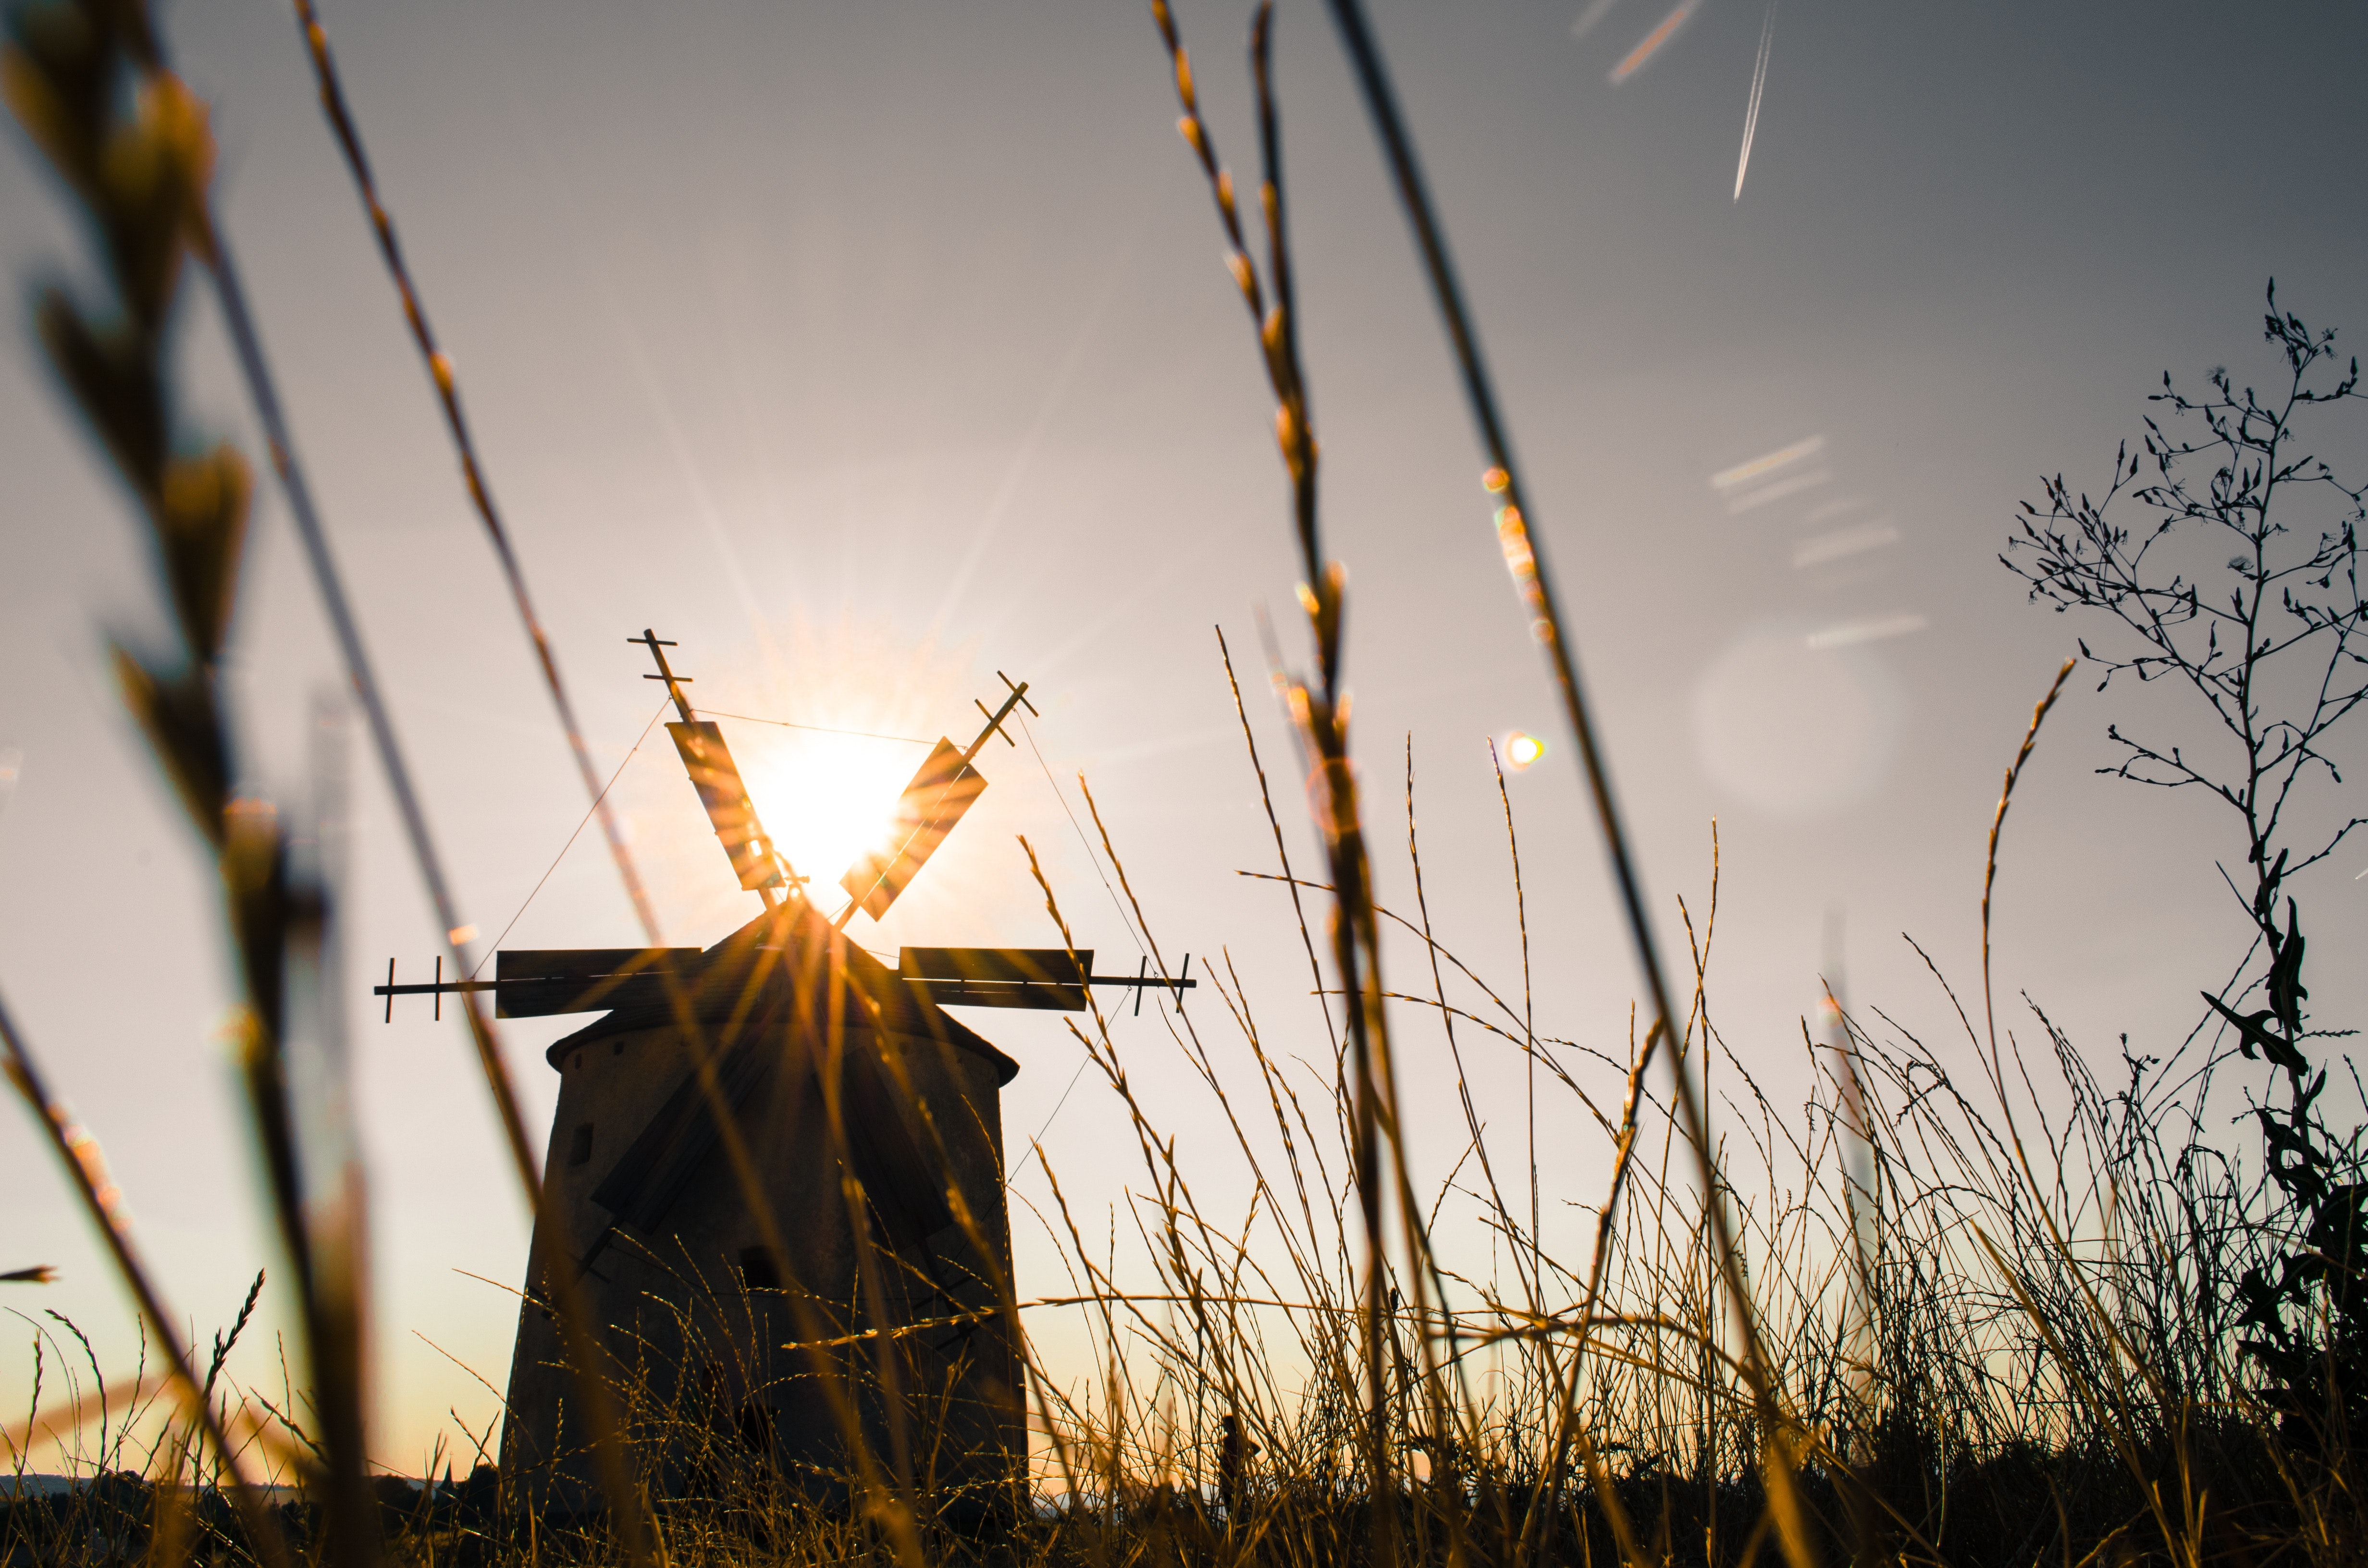 Silhouette of Windmill during Daytime, Countryside, Grass, Low angle shot, Silhouette, HQ Photo